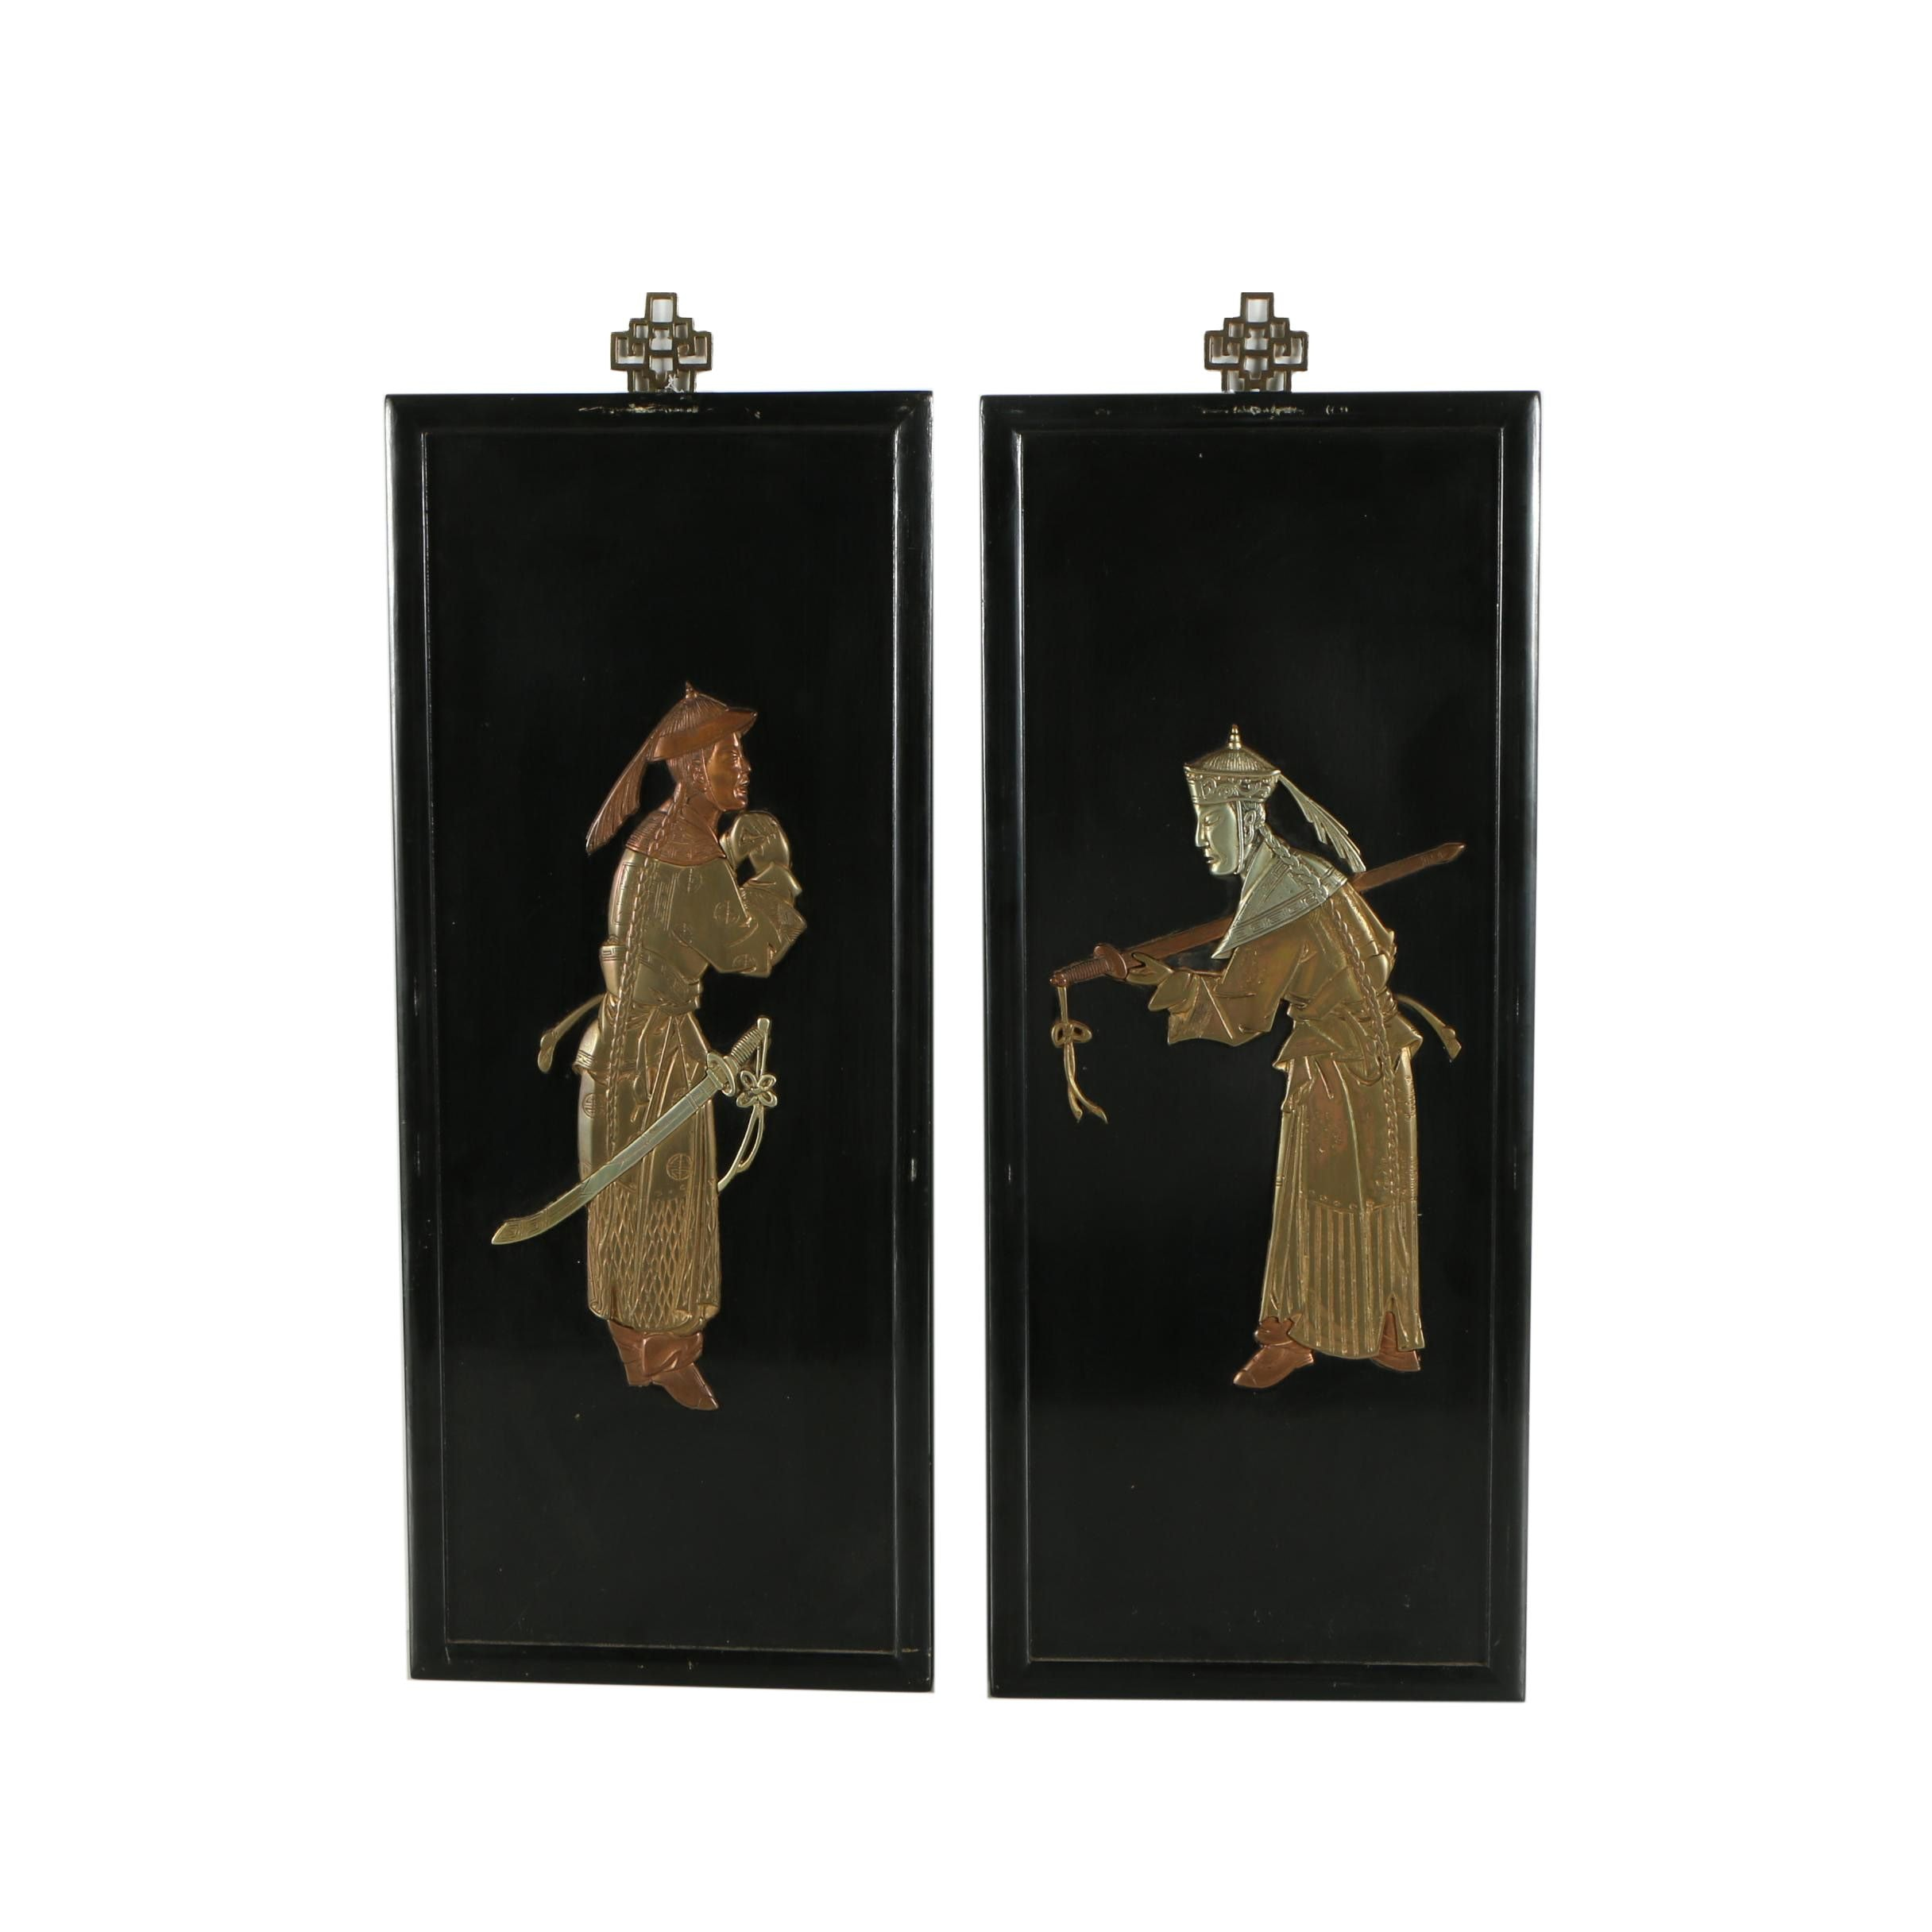 Chinese Decorative Wall Plaques With Brass Figures